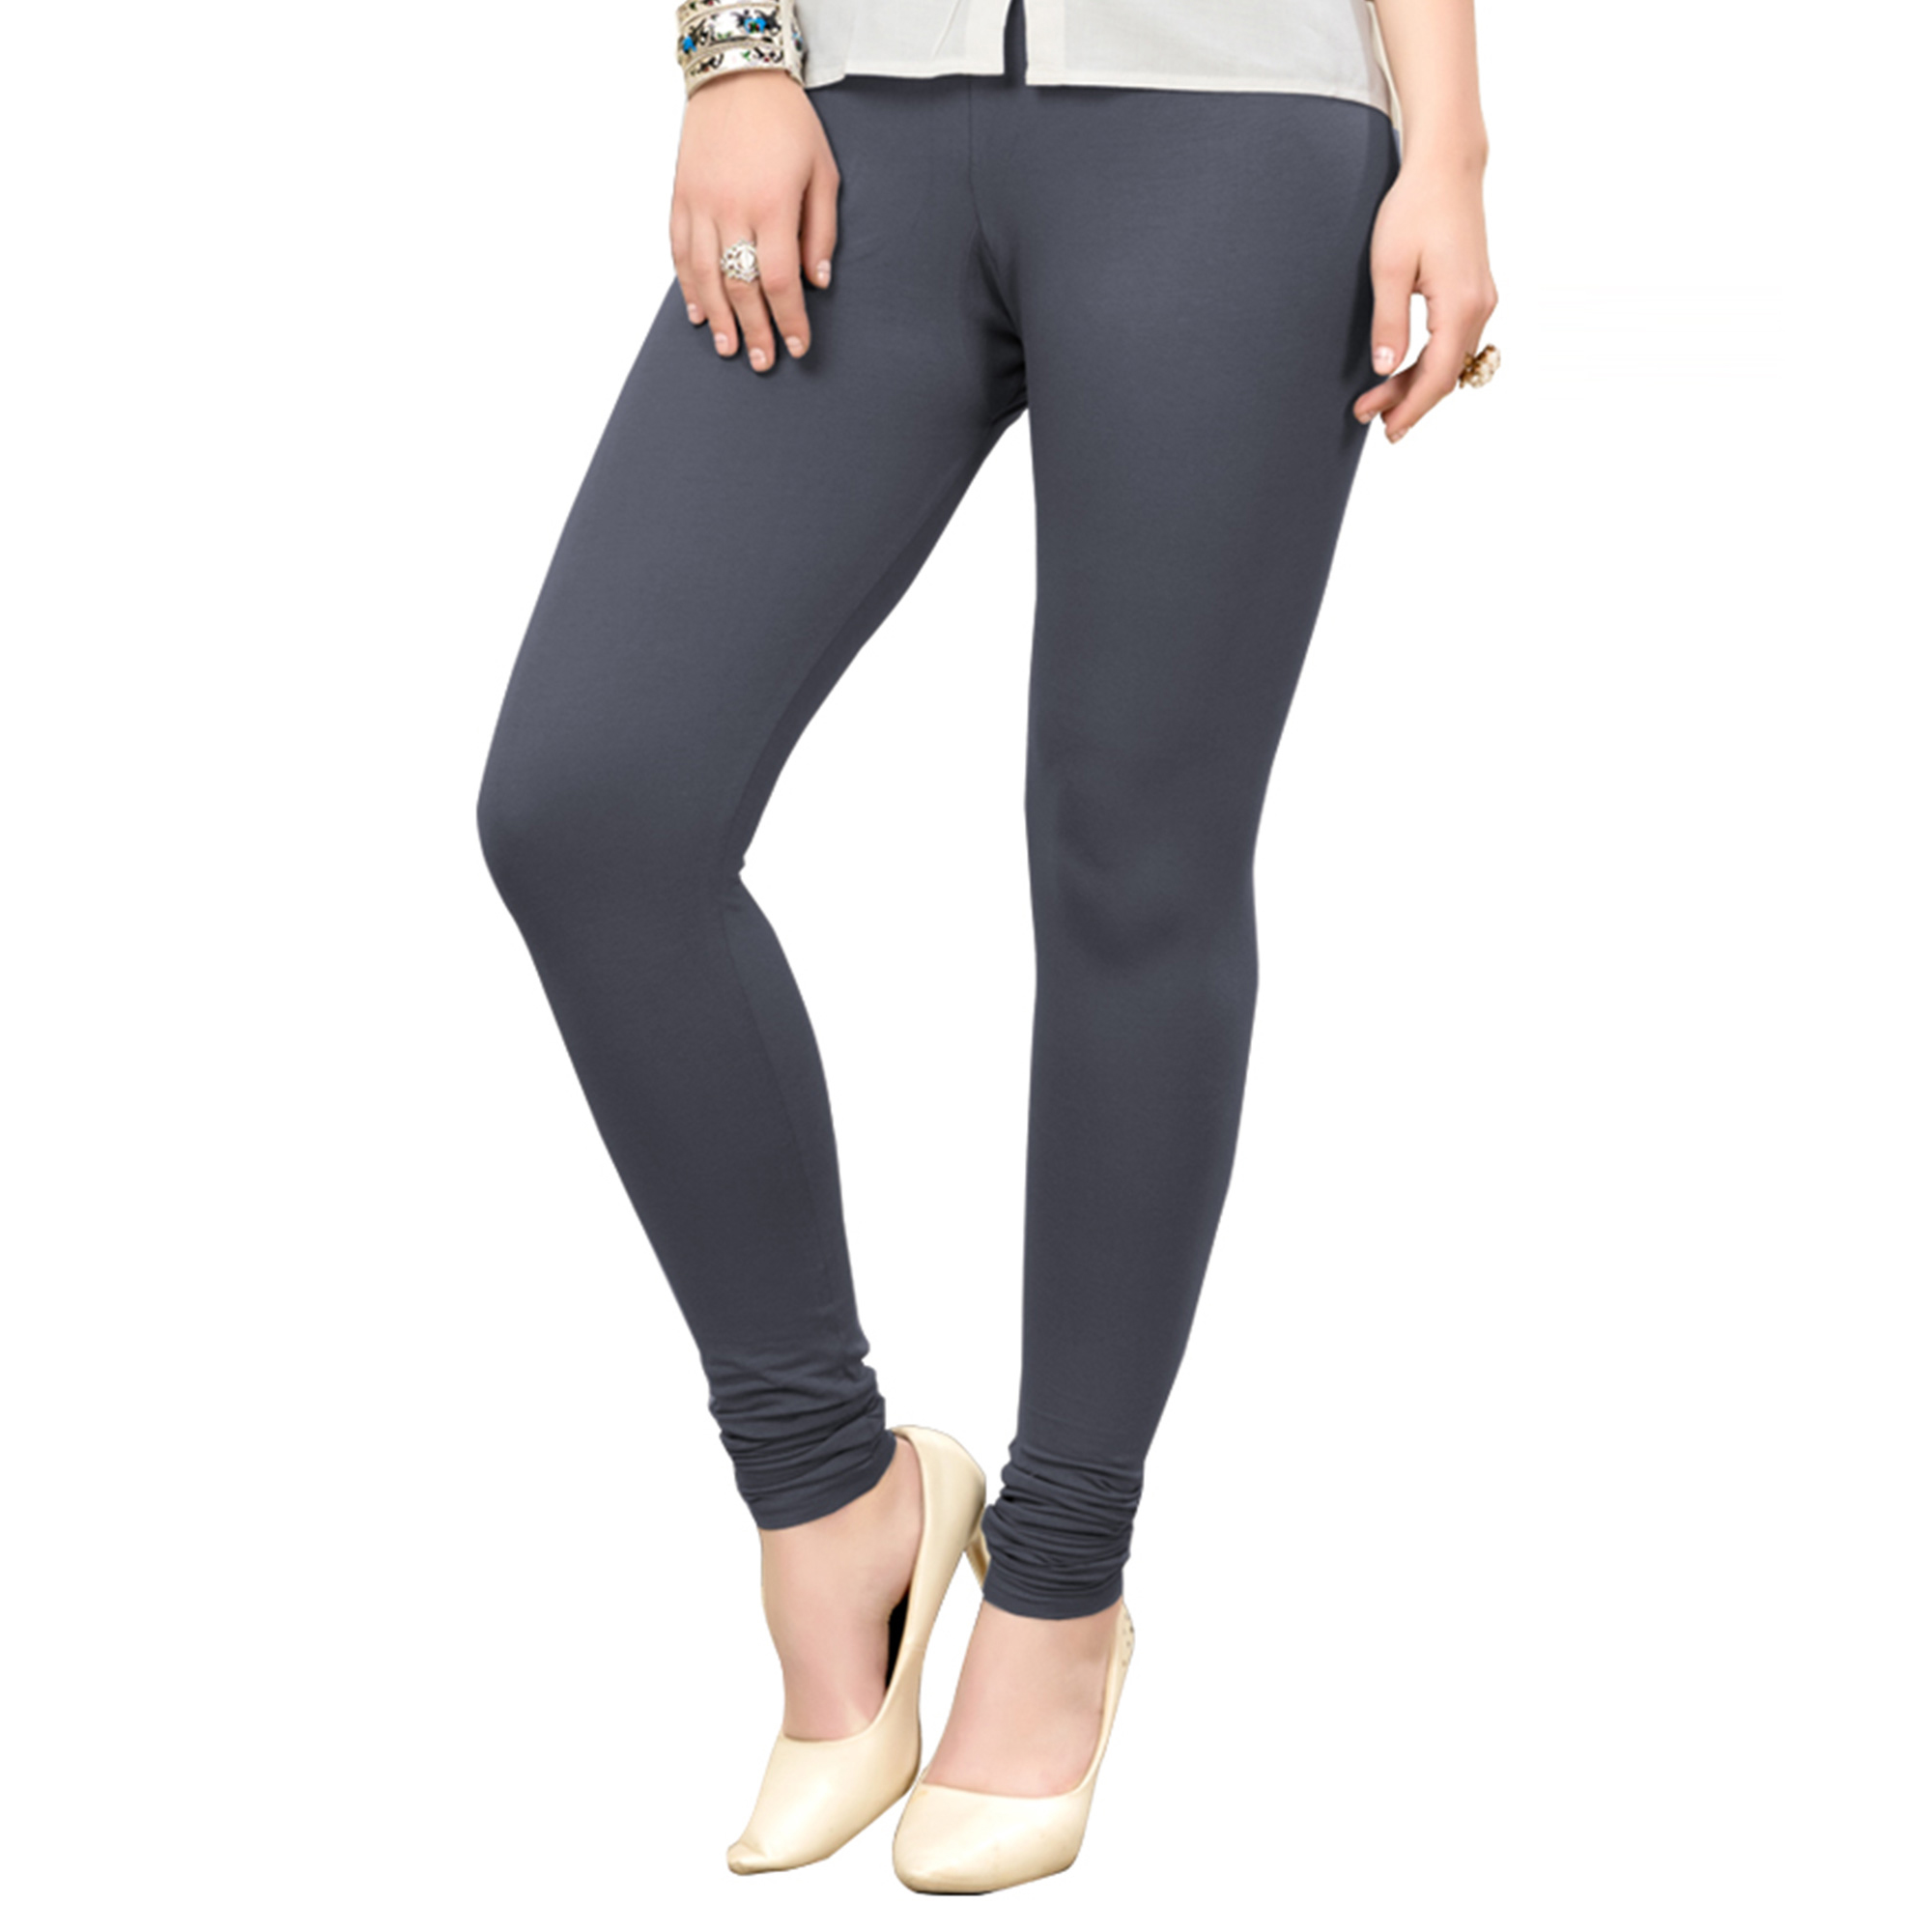 Gorgeous Casual Wear Ankle Length Cotton Leggings - Pack of 2